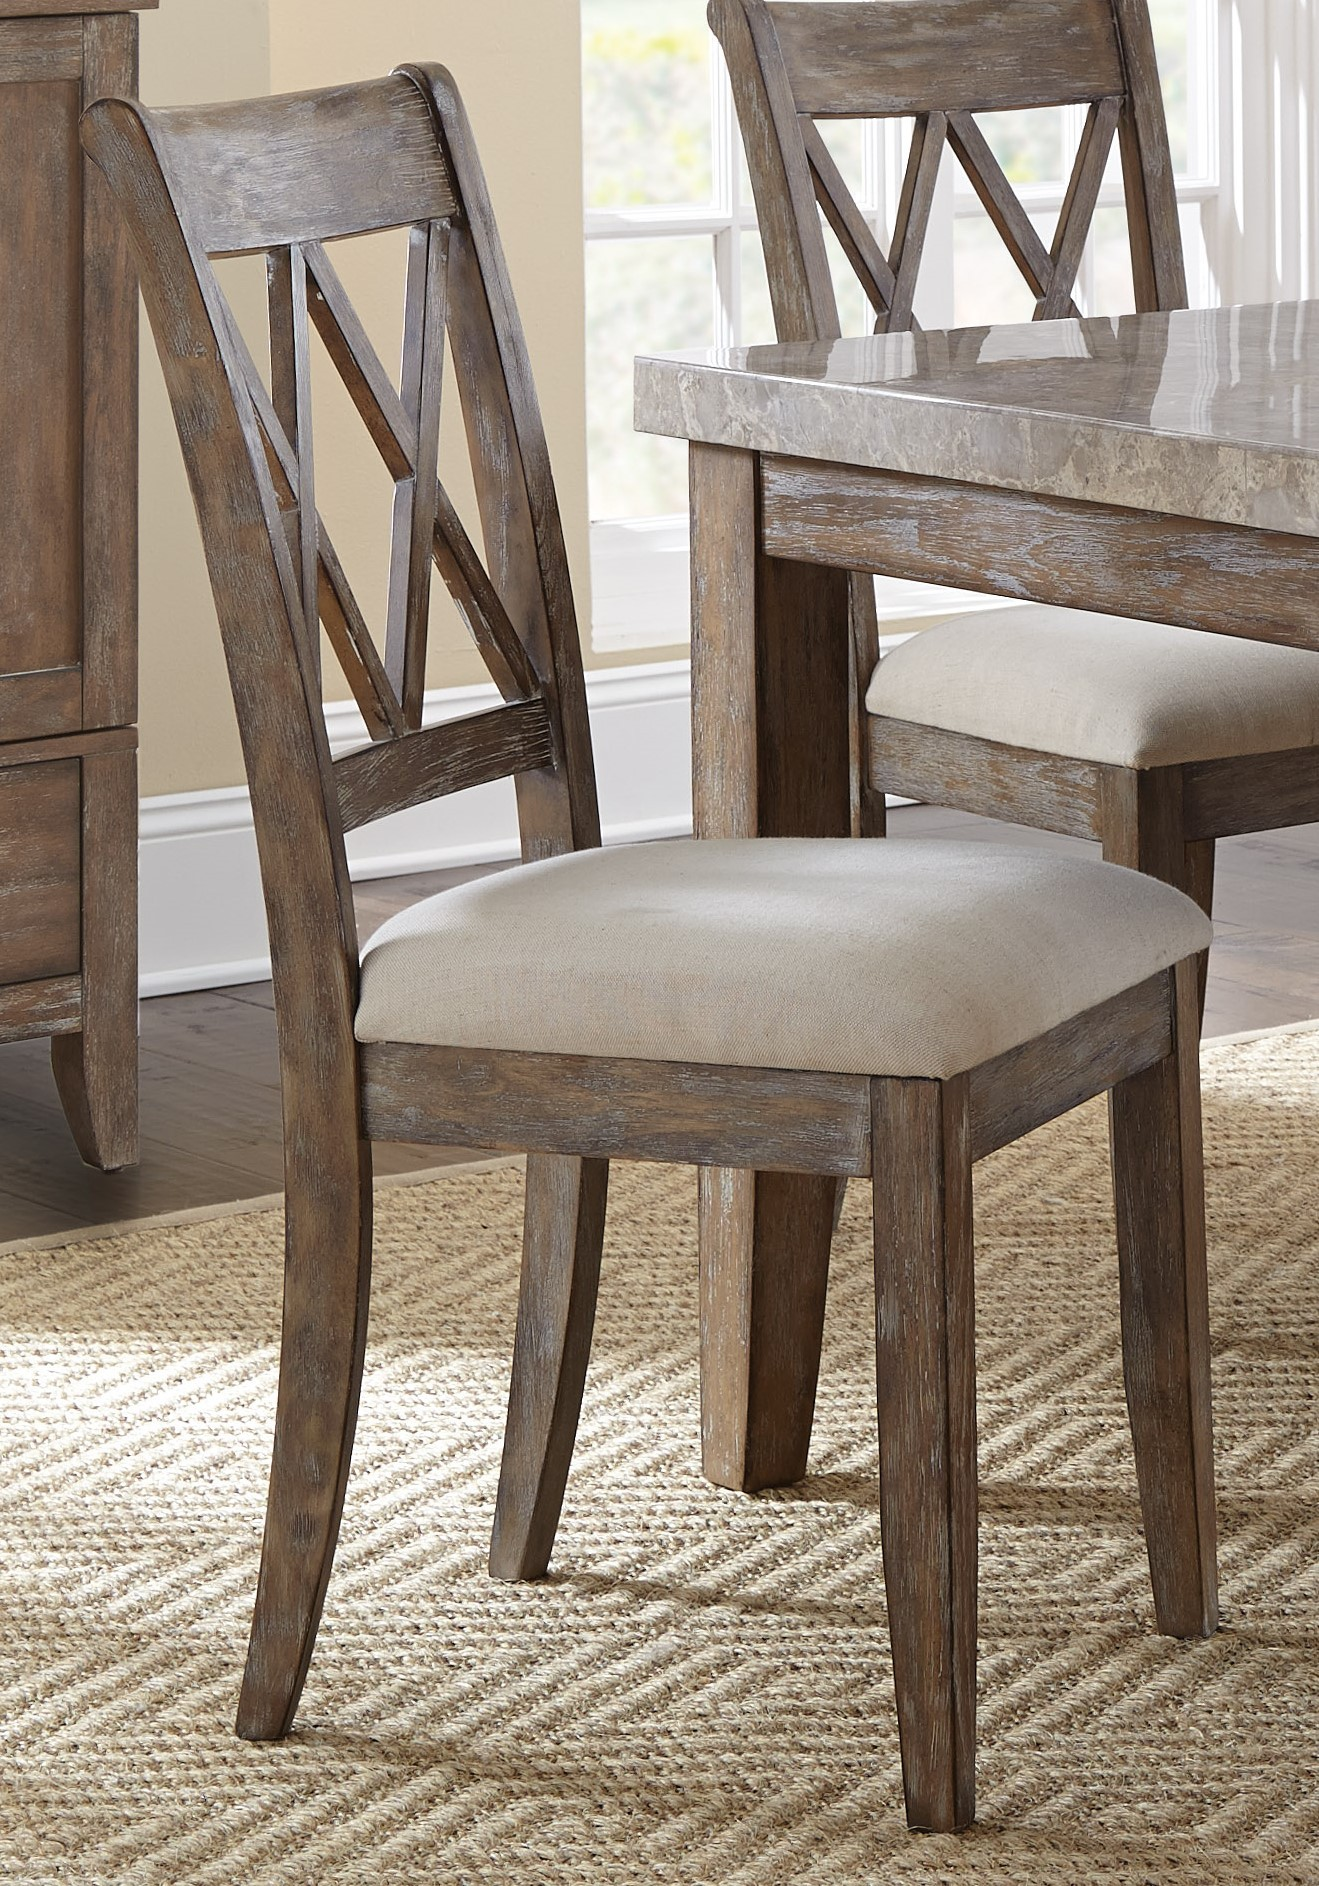 Distressed White Dining Chairs Franco Distressed Wash Dining Chair Set Of 2 From Steve